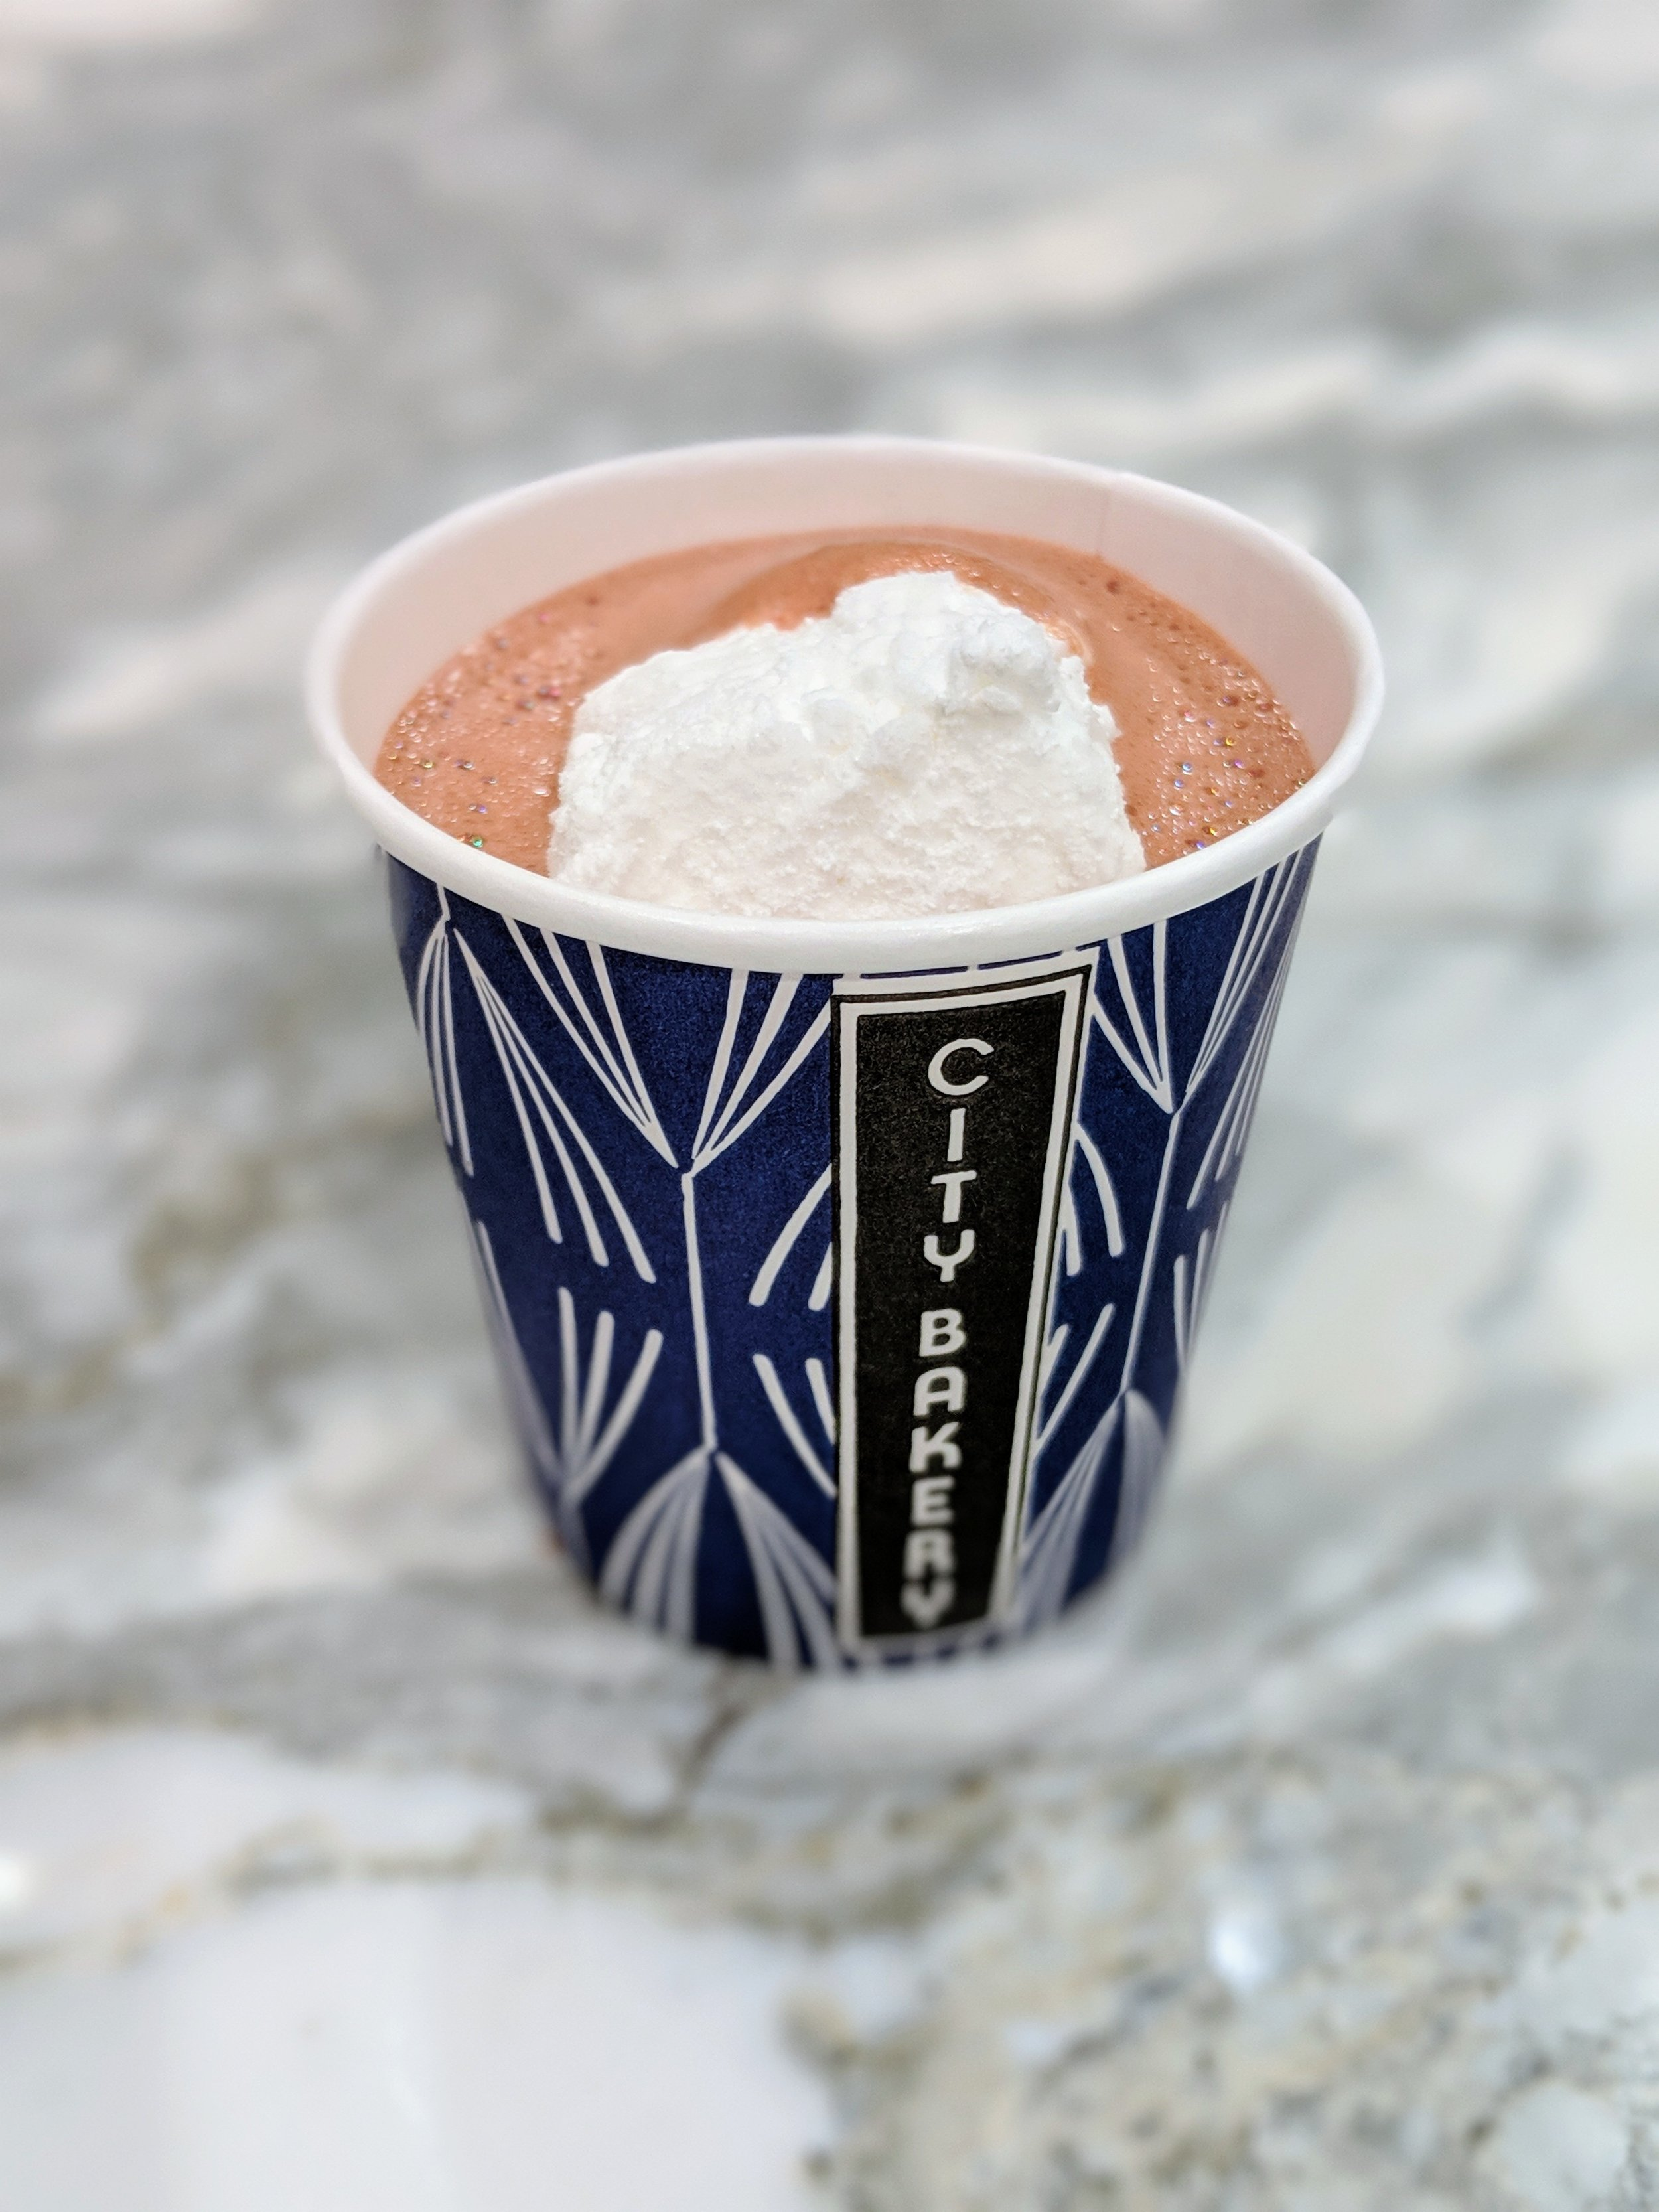 CITY BAKERY  Famous for its hot chocolate, among other provisions, the Flatiron hotspot has an outpost inside of Neiman Marcus.